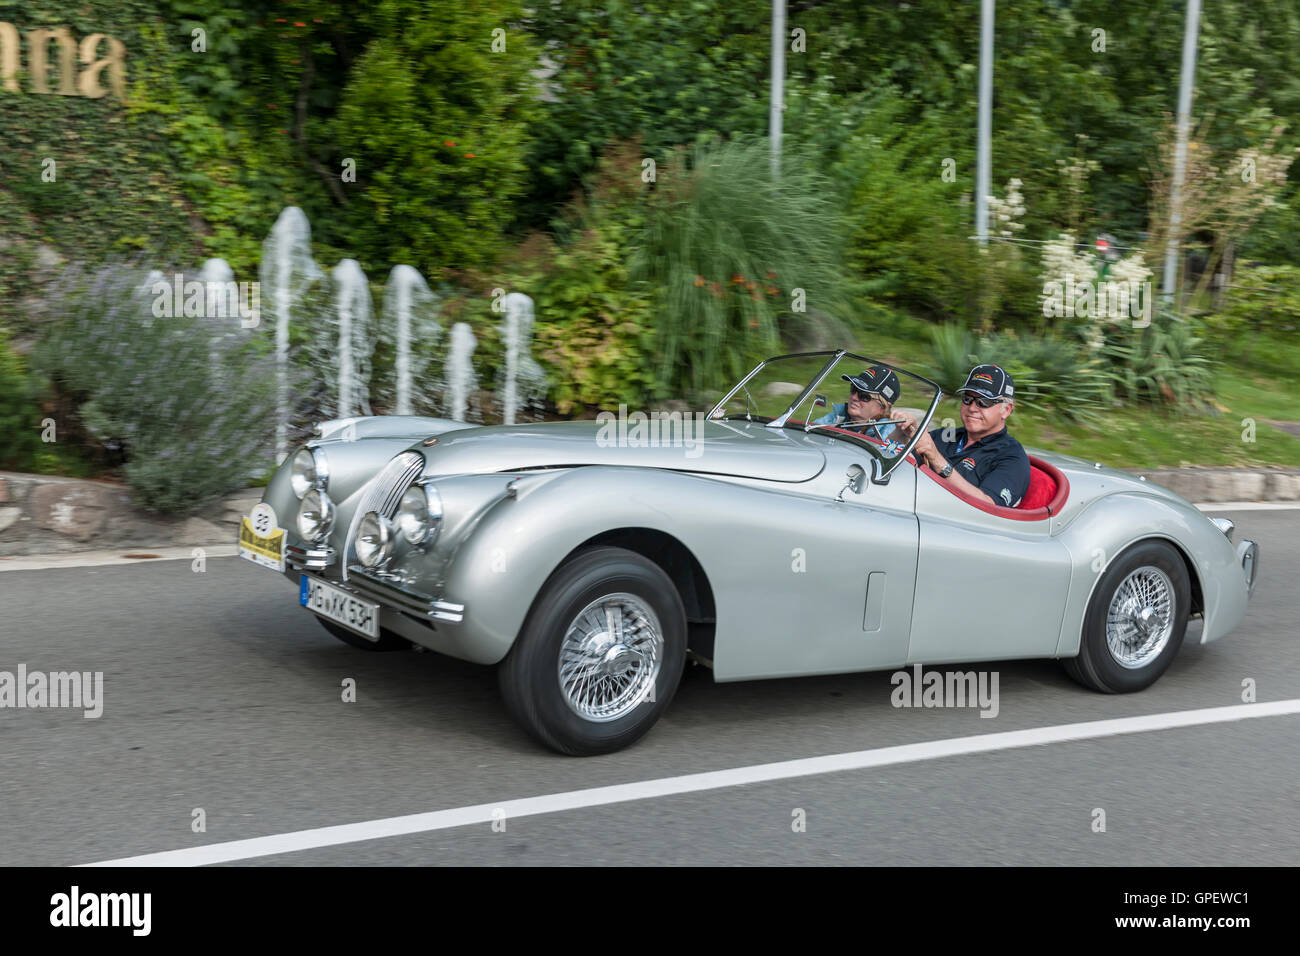 jaguar xk 120 stock photos jaguar xk 120 stock images alamy. Black Bedroom Furniture Sets. Home Design Ideas